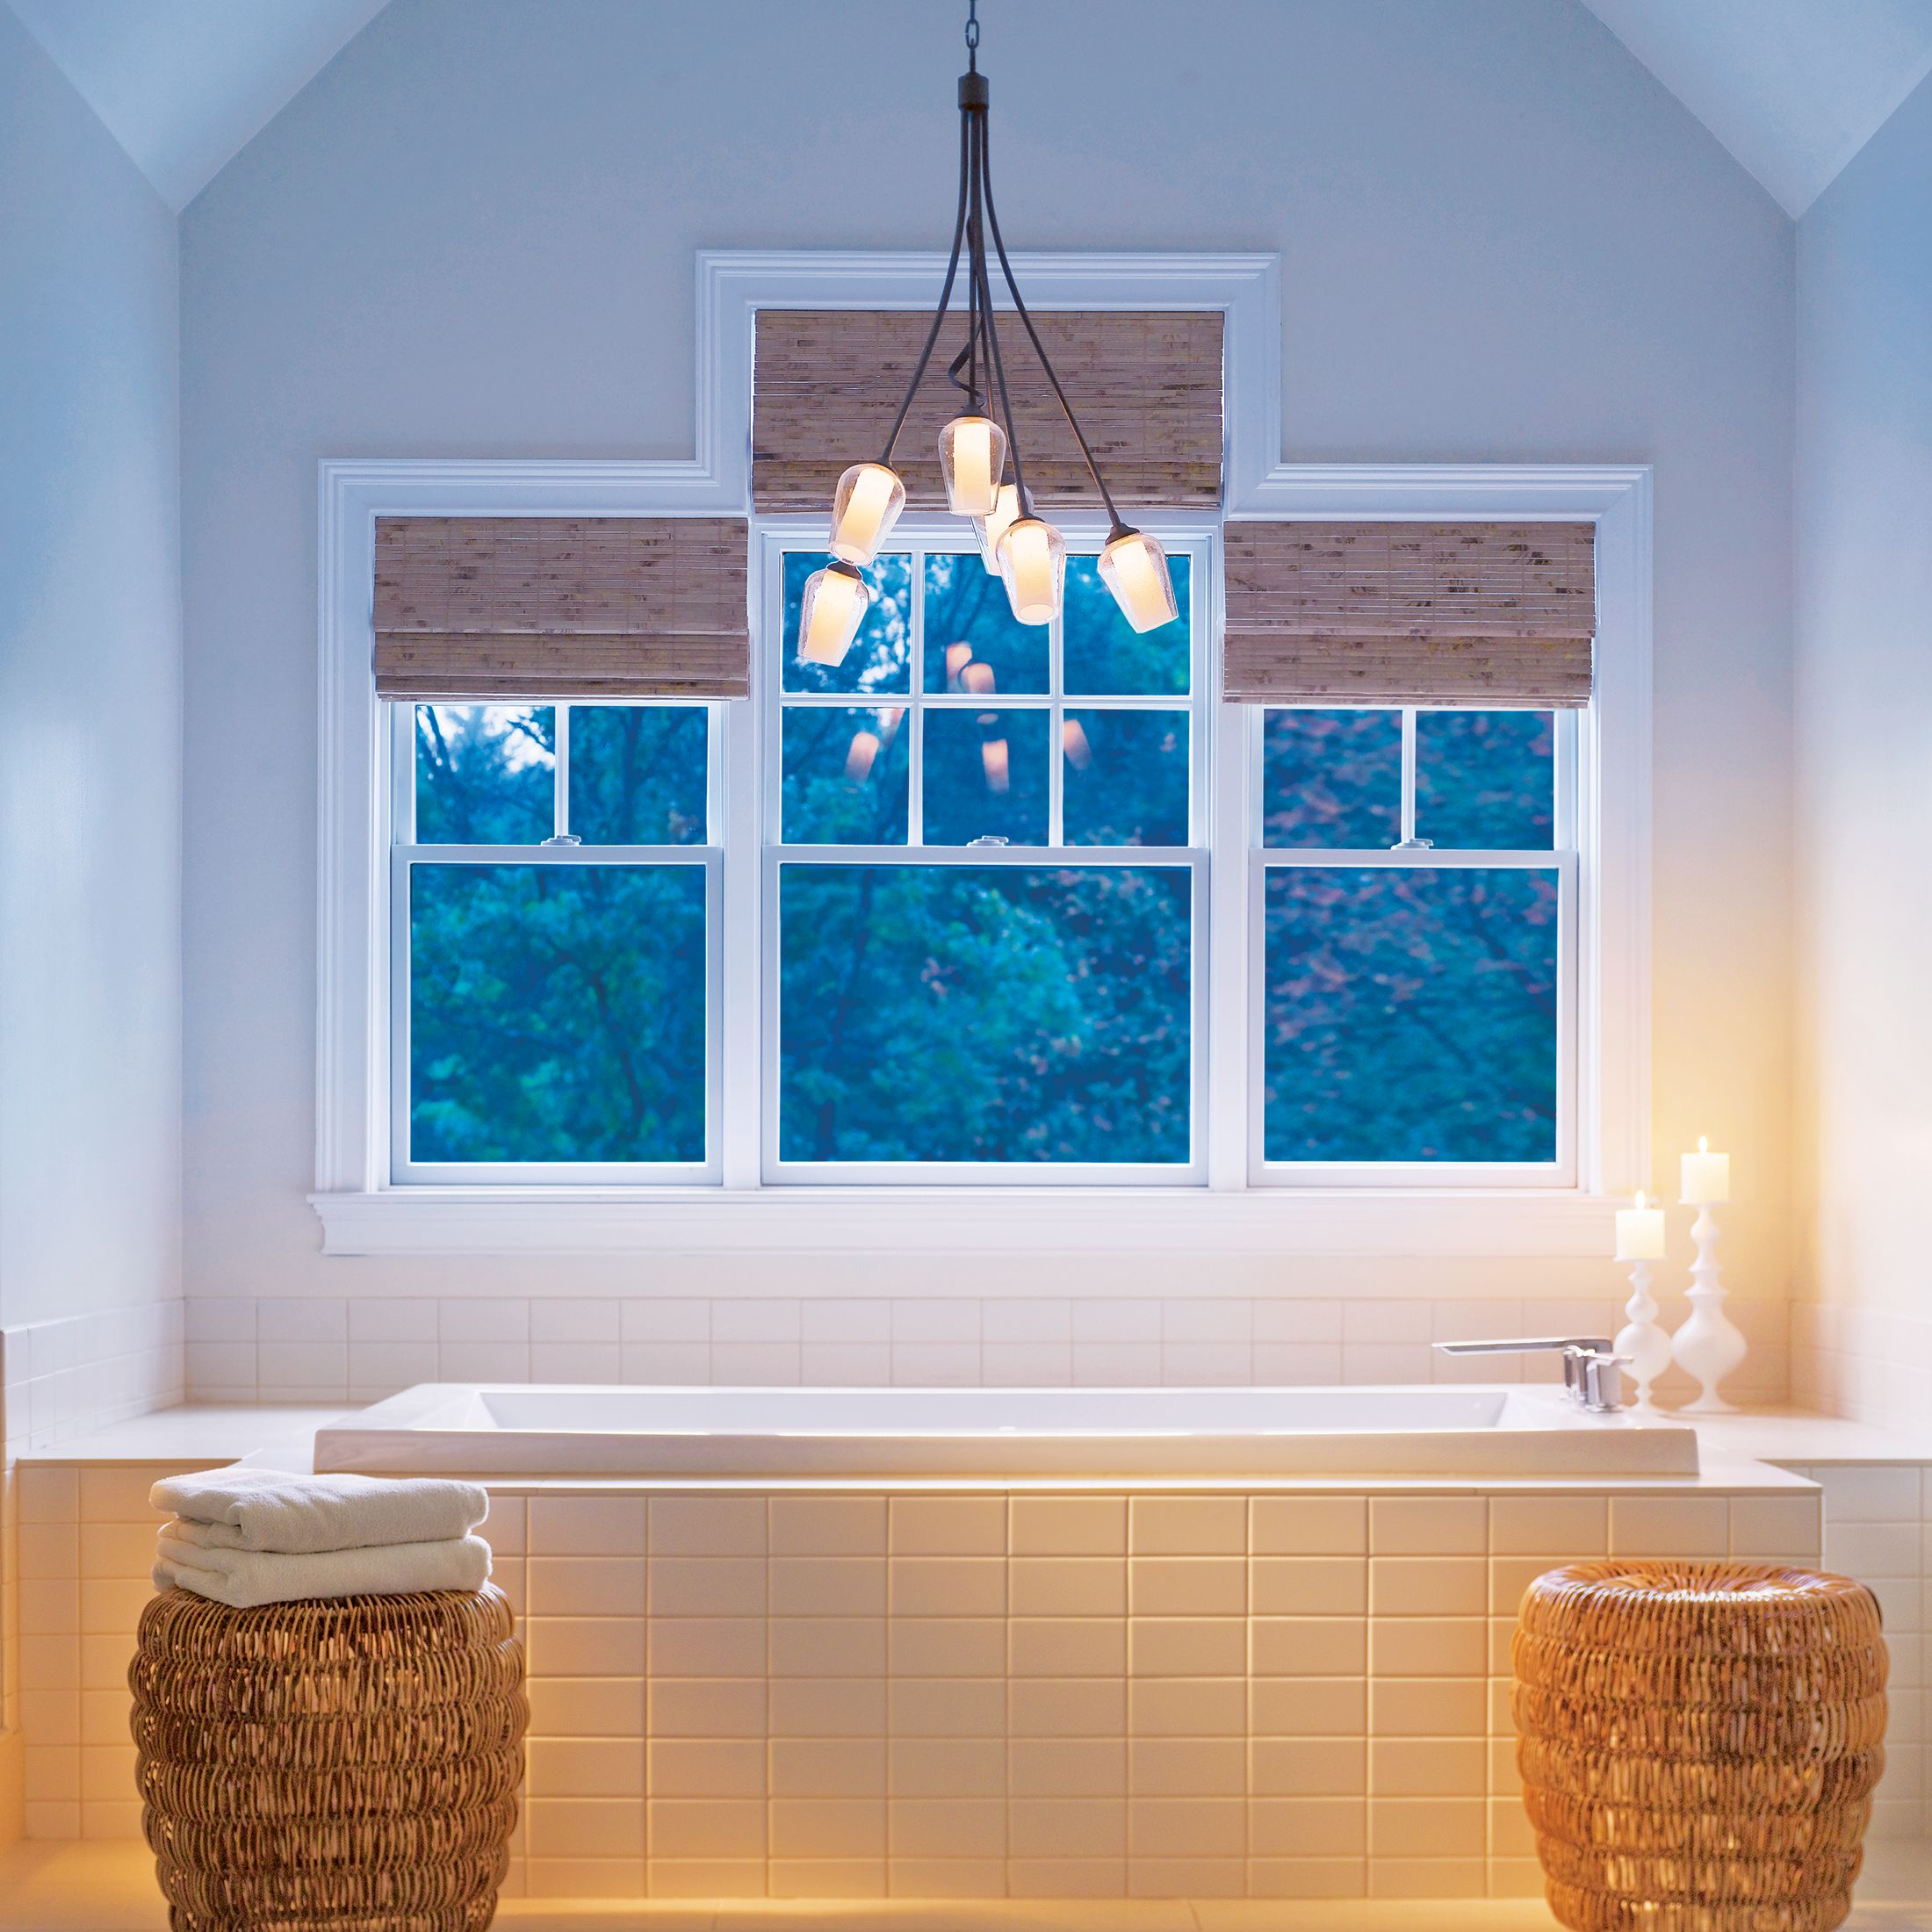 Hubbardton Forge's Flora 6-Light Chandelier creates the perfect atmosphere for a relaxing soak in the bathtub.